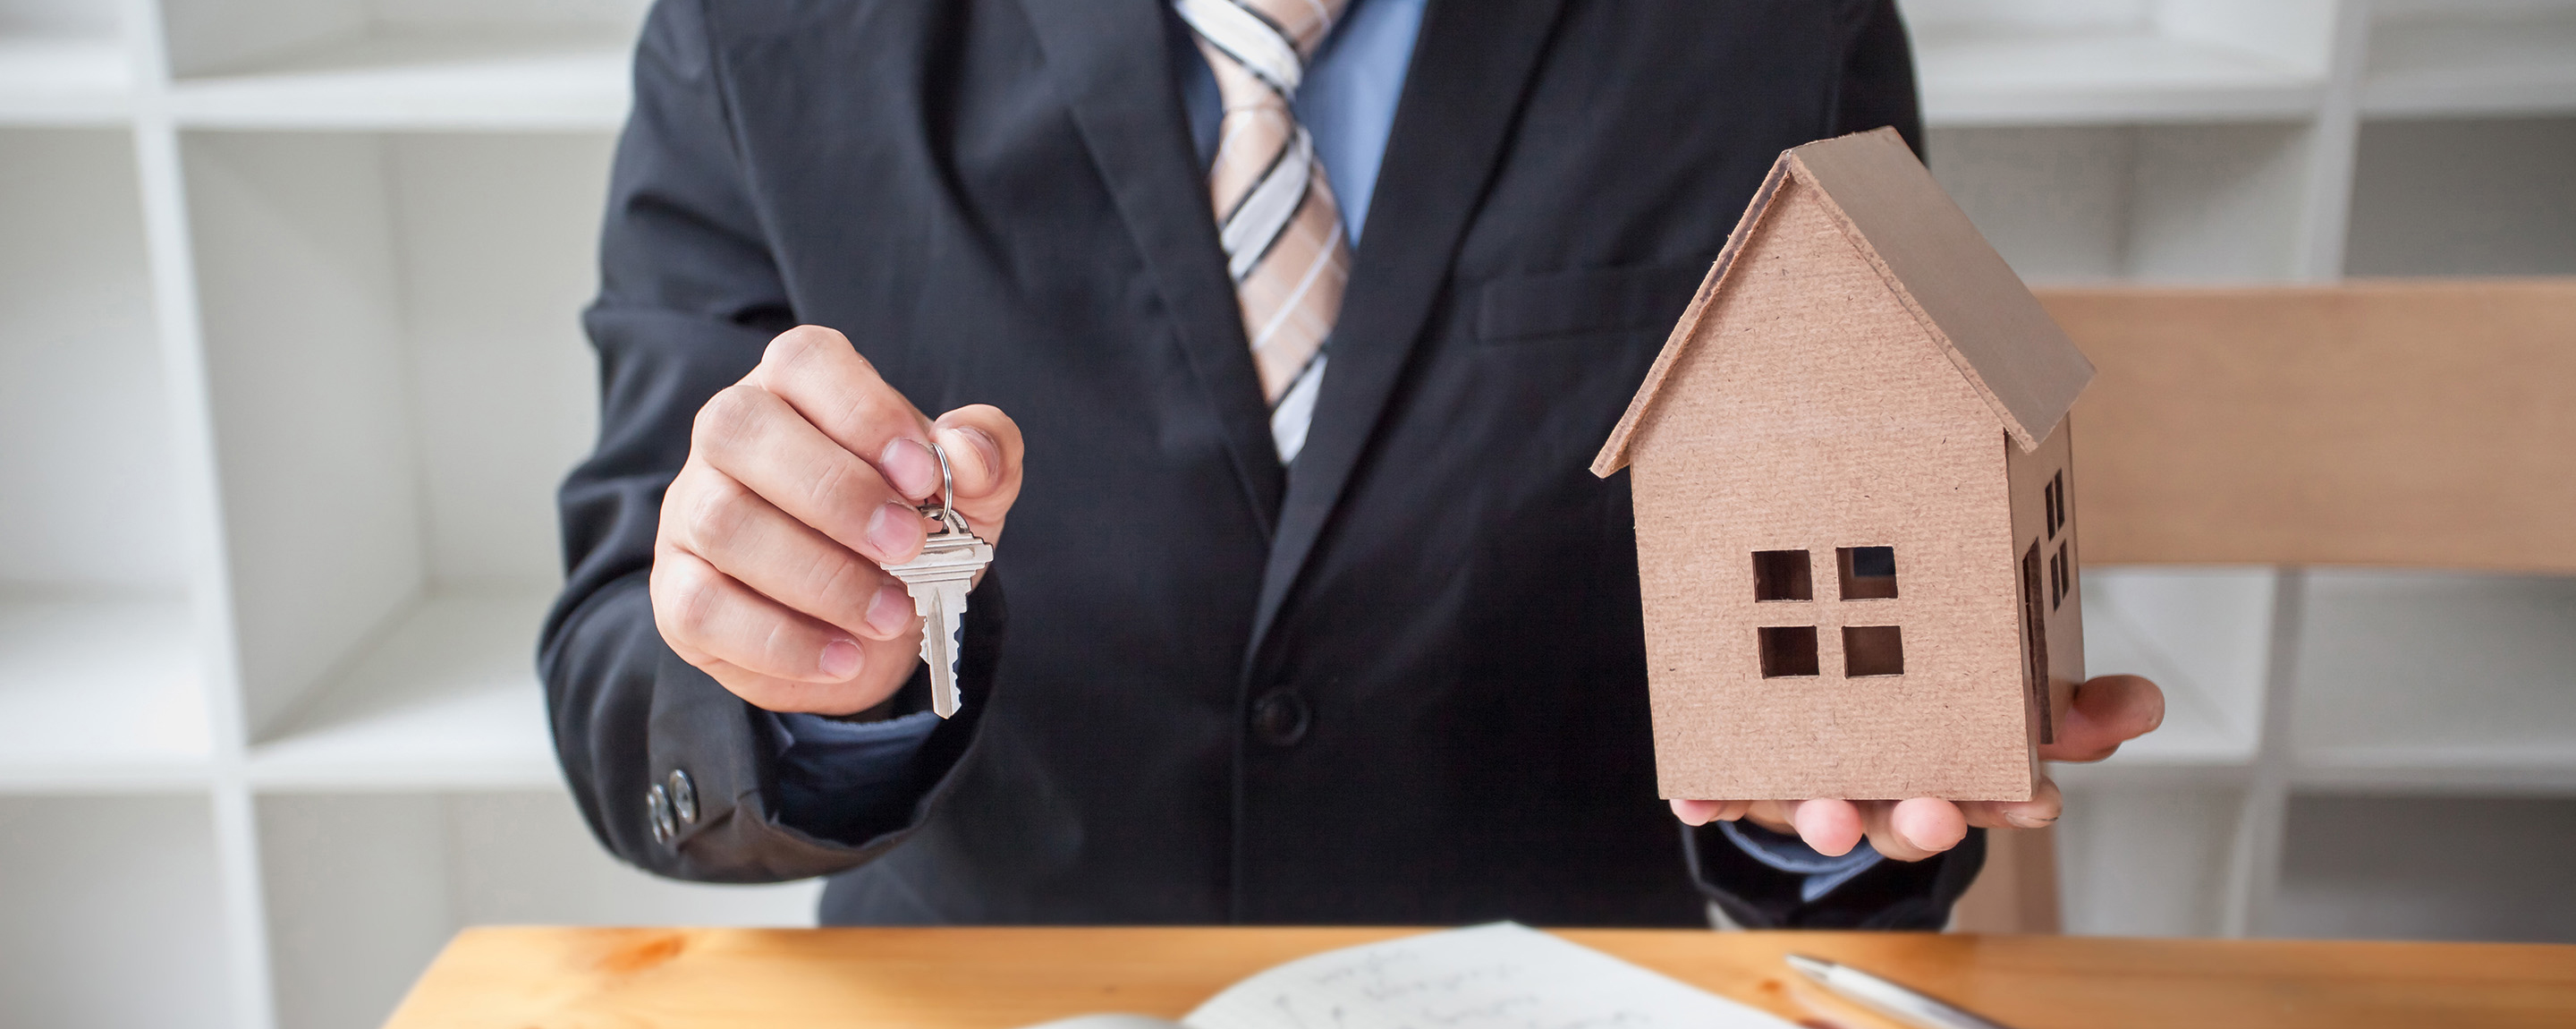 How to Compare Homeowners Insurance Quotes | AAA